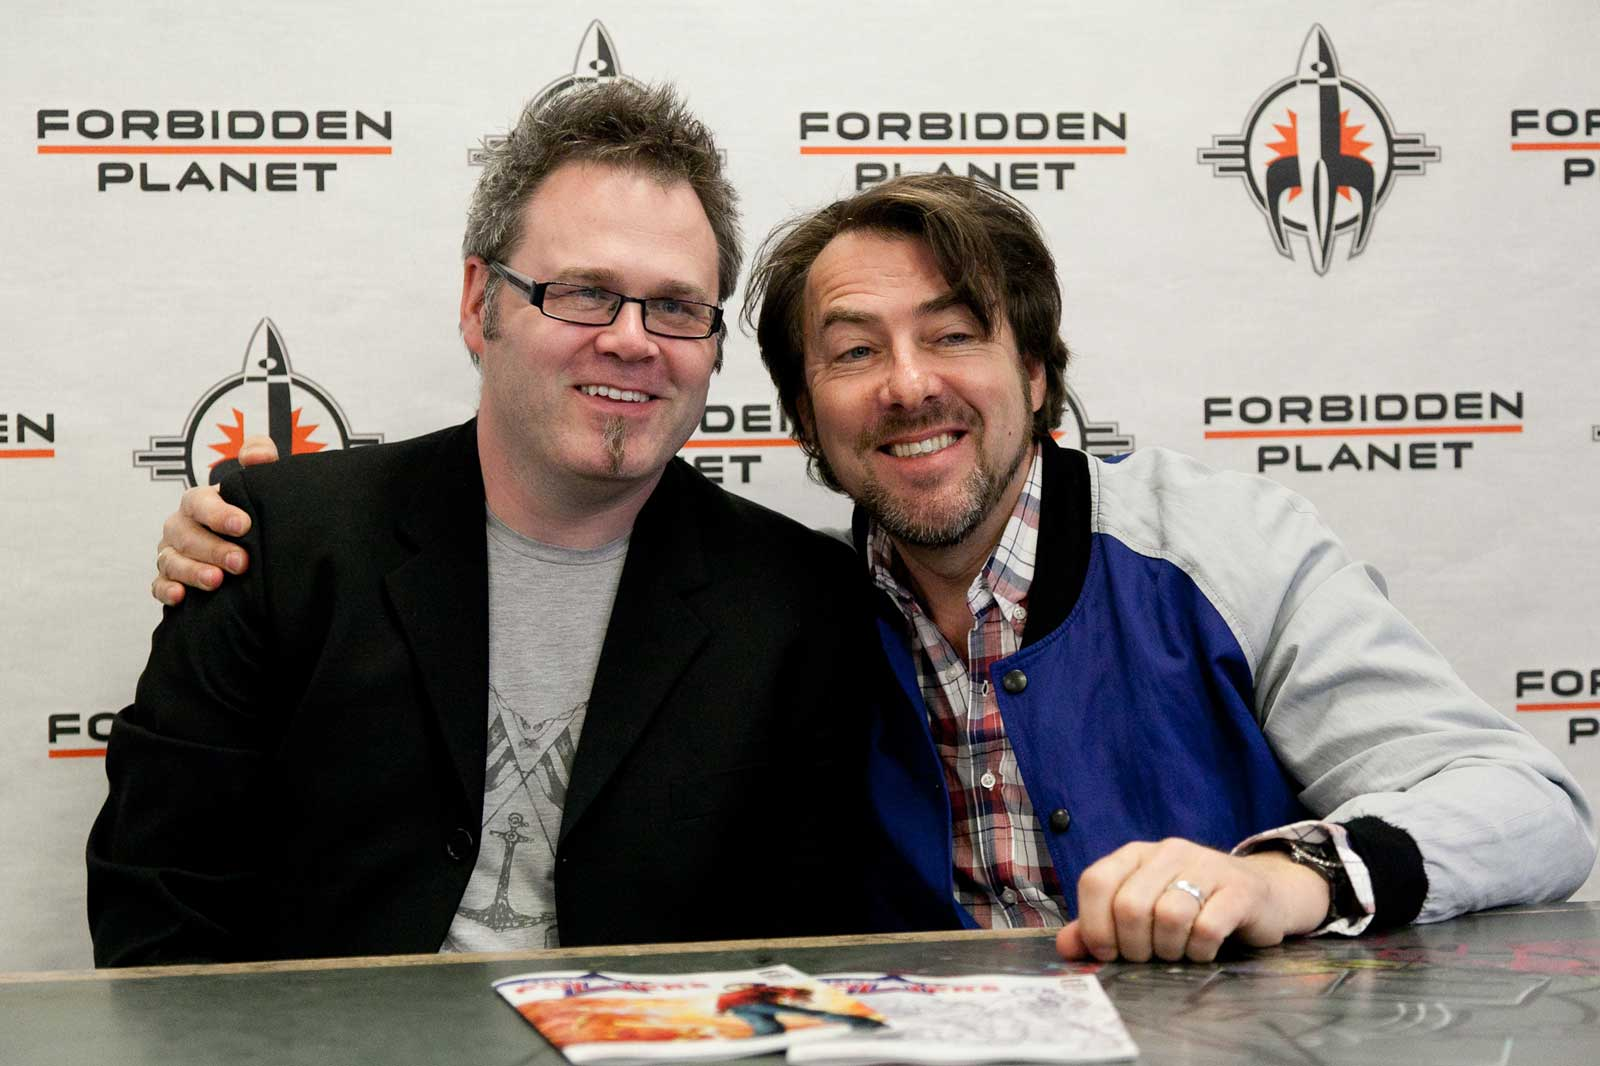 Bryan Hitch and Jonathan Ross. Image courtesy Forbidden Planet